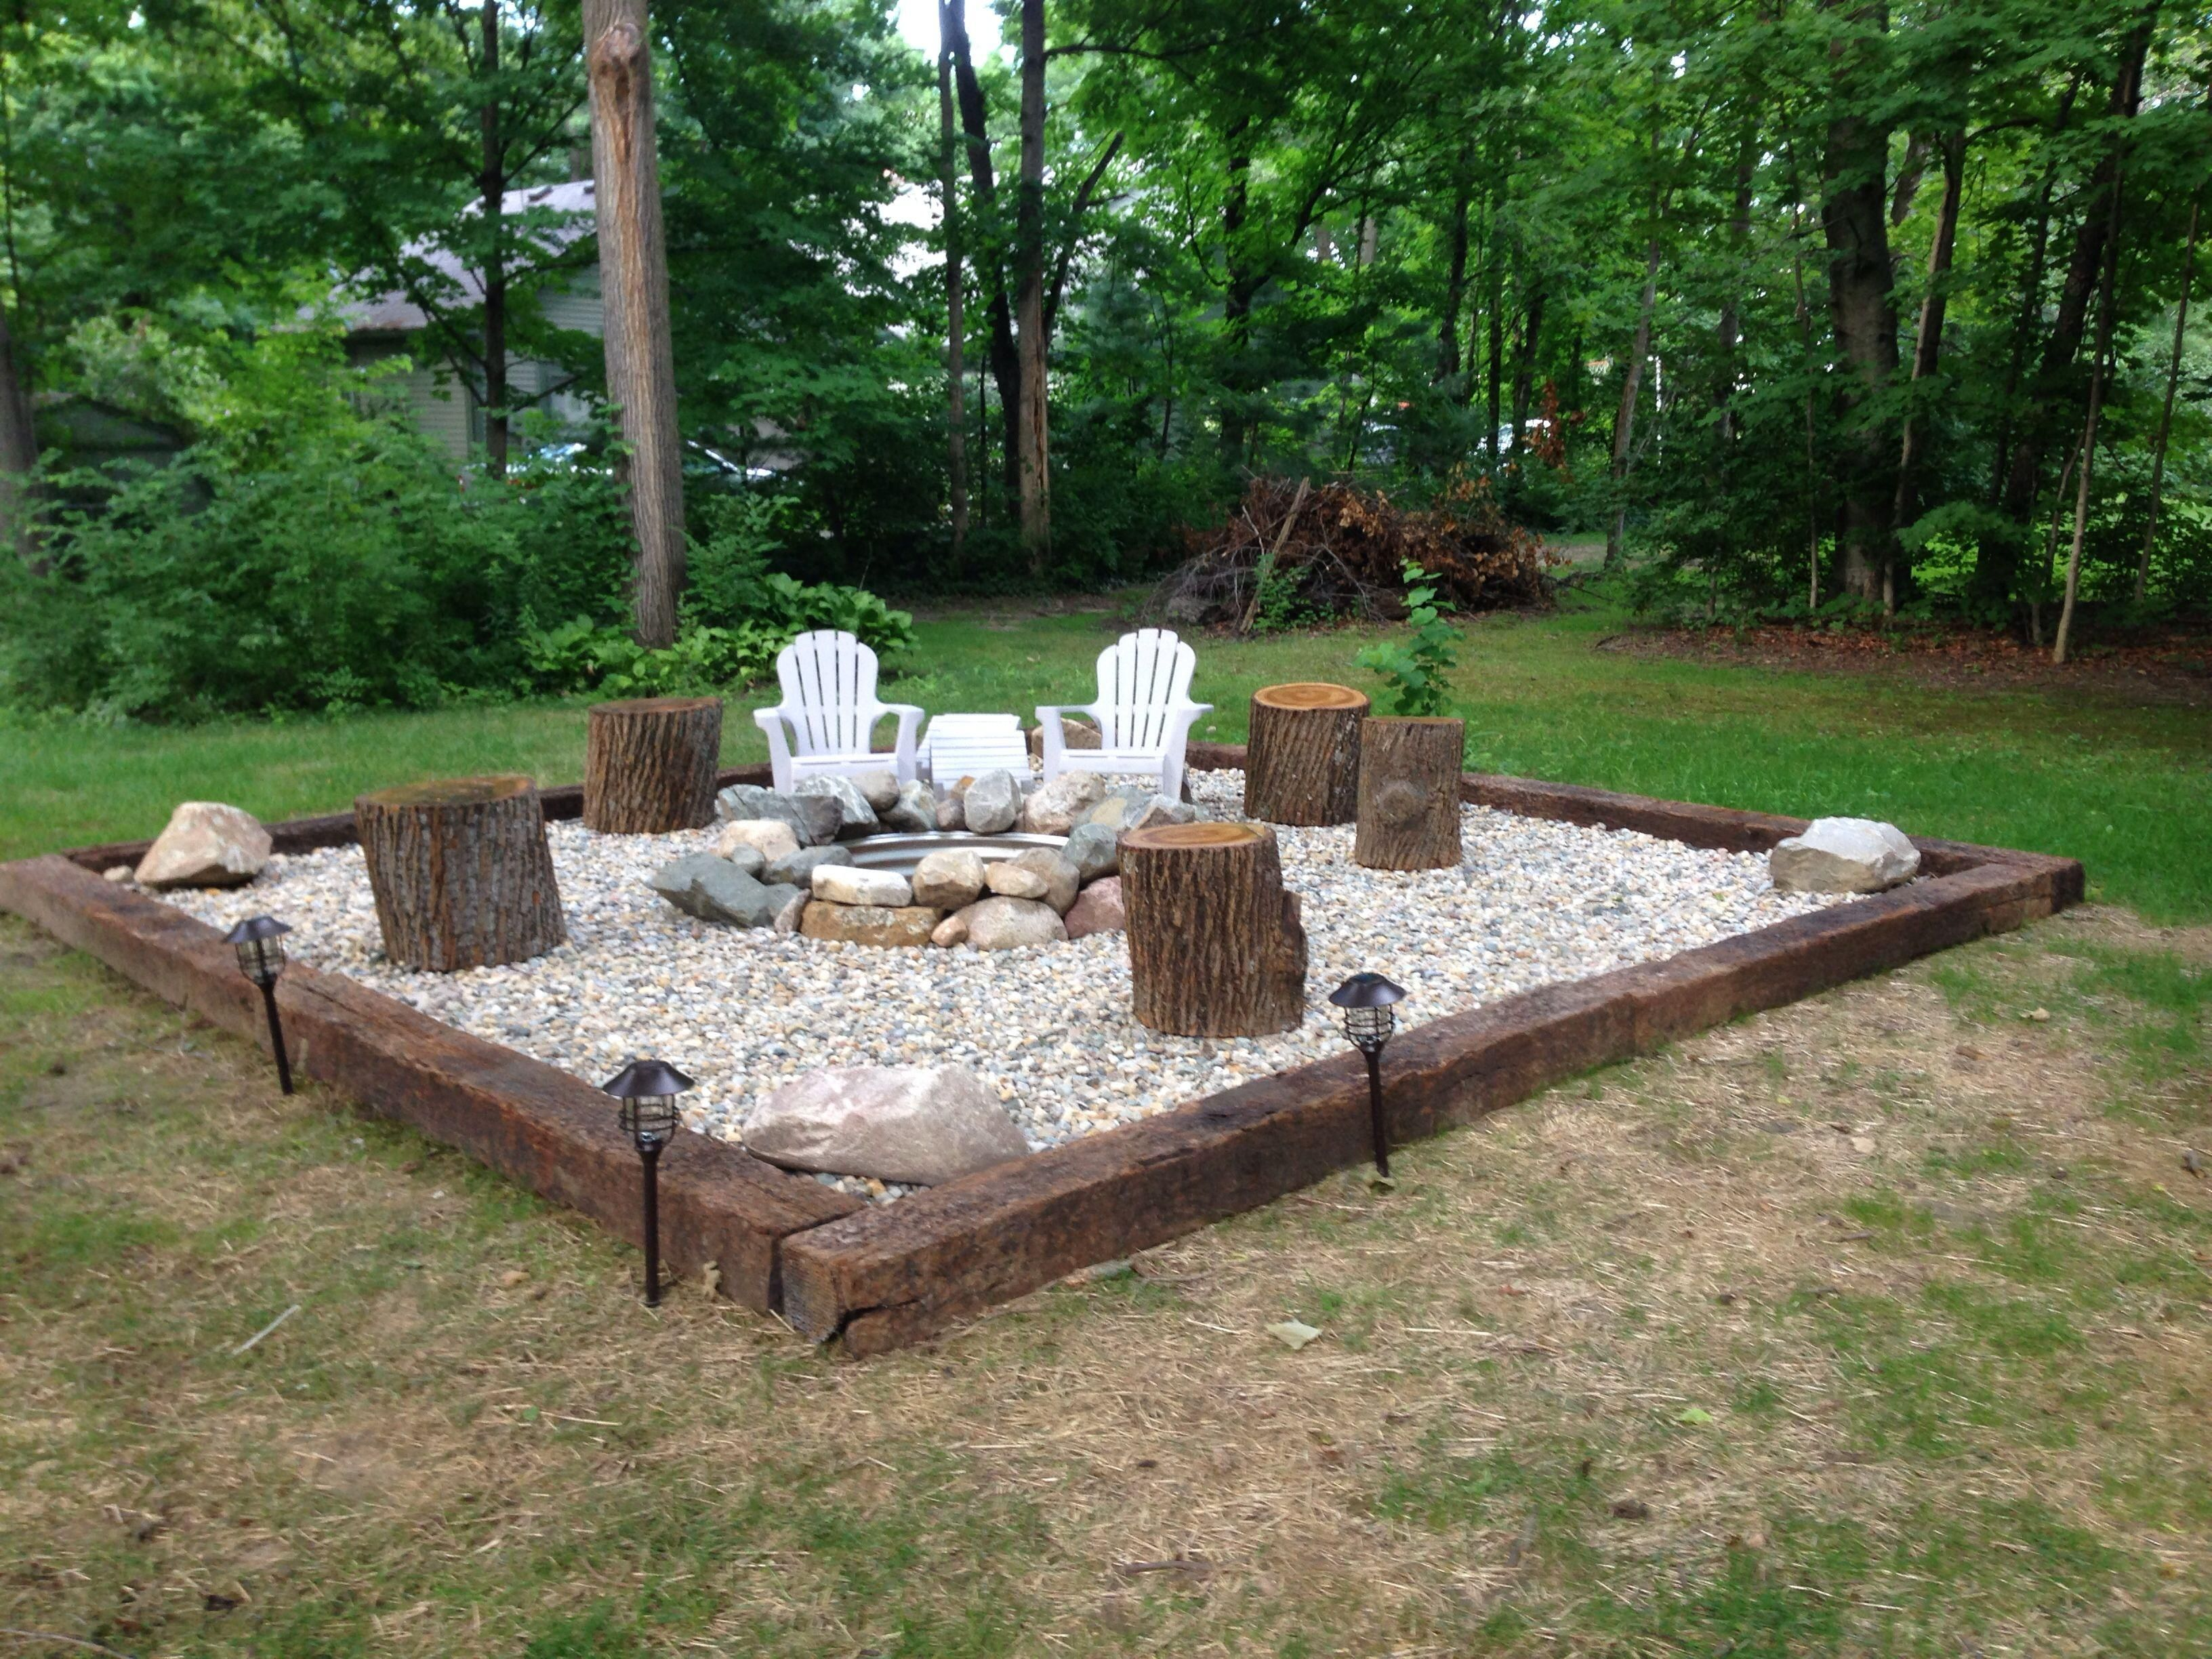 Backyard Landscaping On A Budget Outdoor Areas Unique Backyard Landscaping On A Budget Outdoor A Backyard Firepit Area Fire Pit Landscaping Fire Pit Backyard